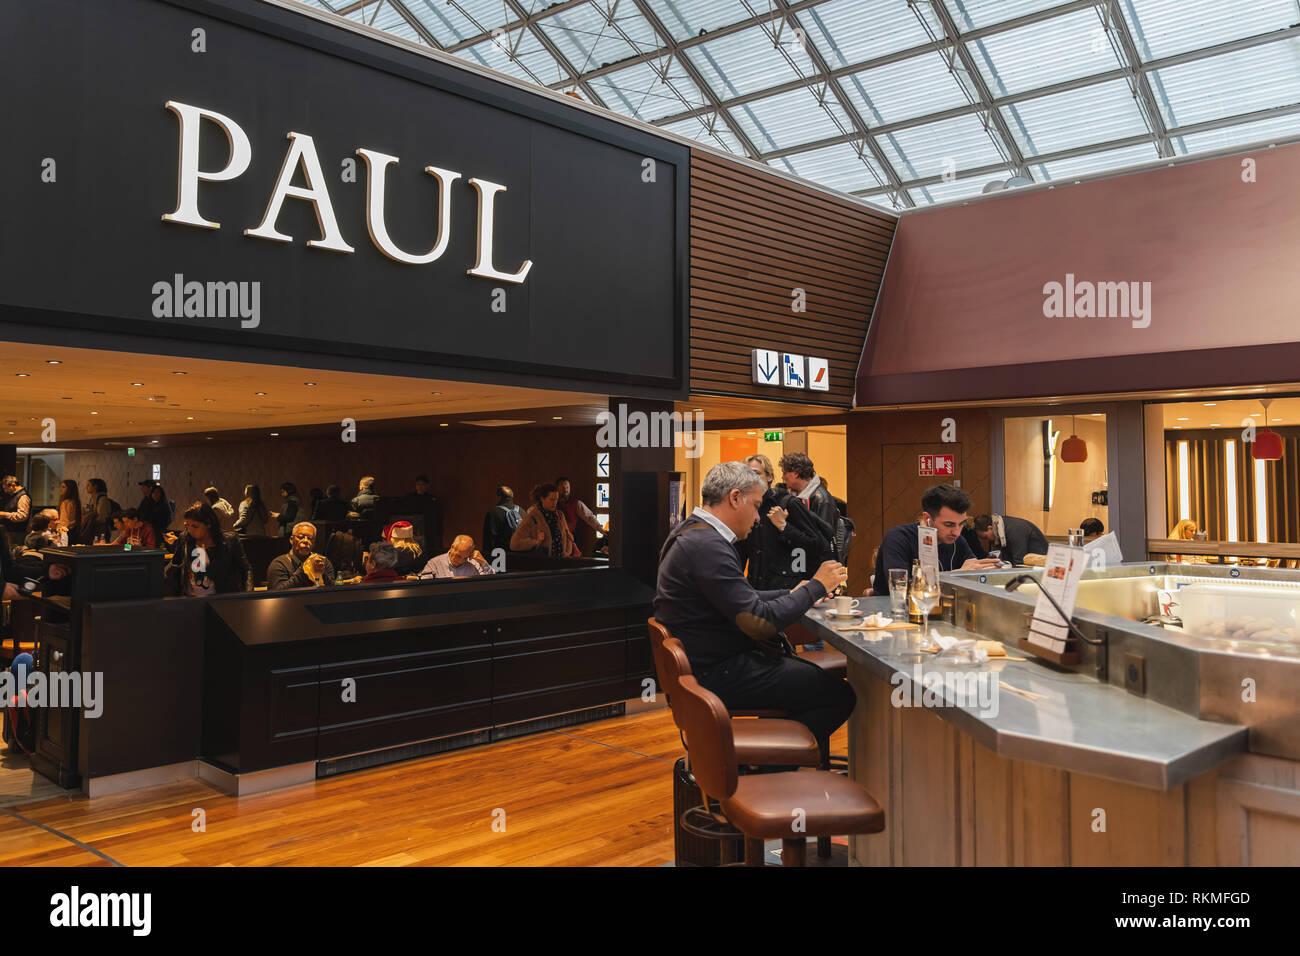 CDG Airport, Paris - 12/22/18: Paul logo above food court area in Paris airport. Logo of famous French bakery and restaurant. - Stock Image